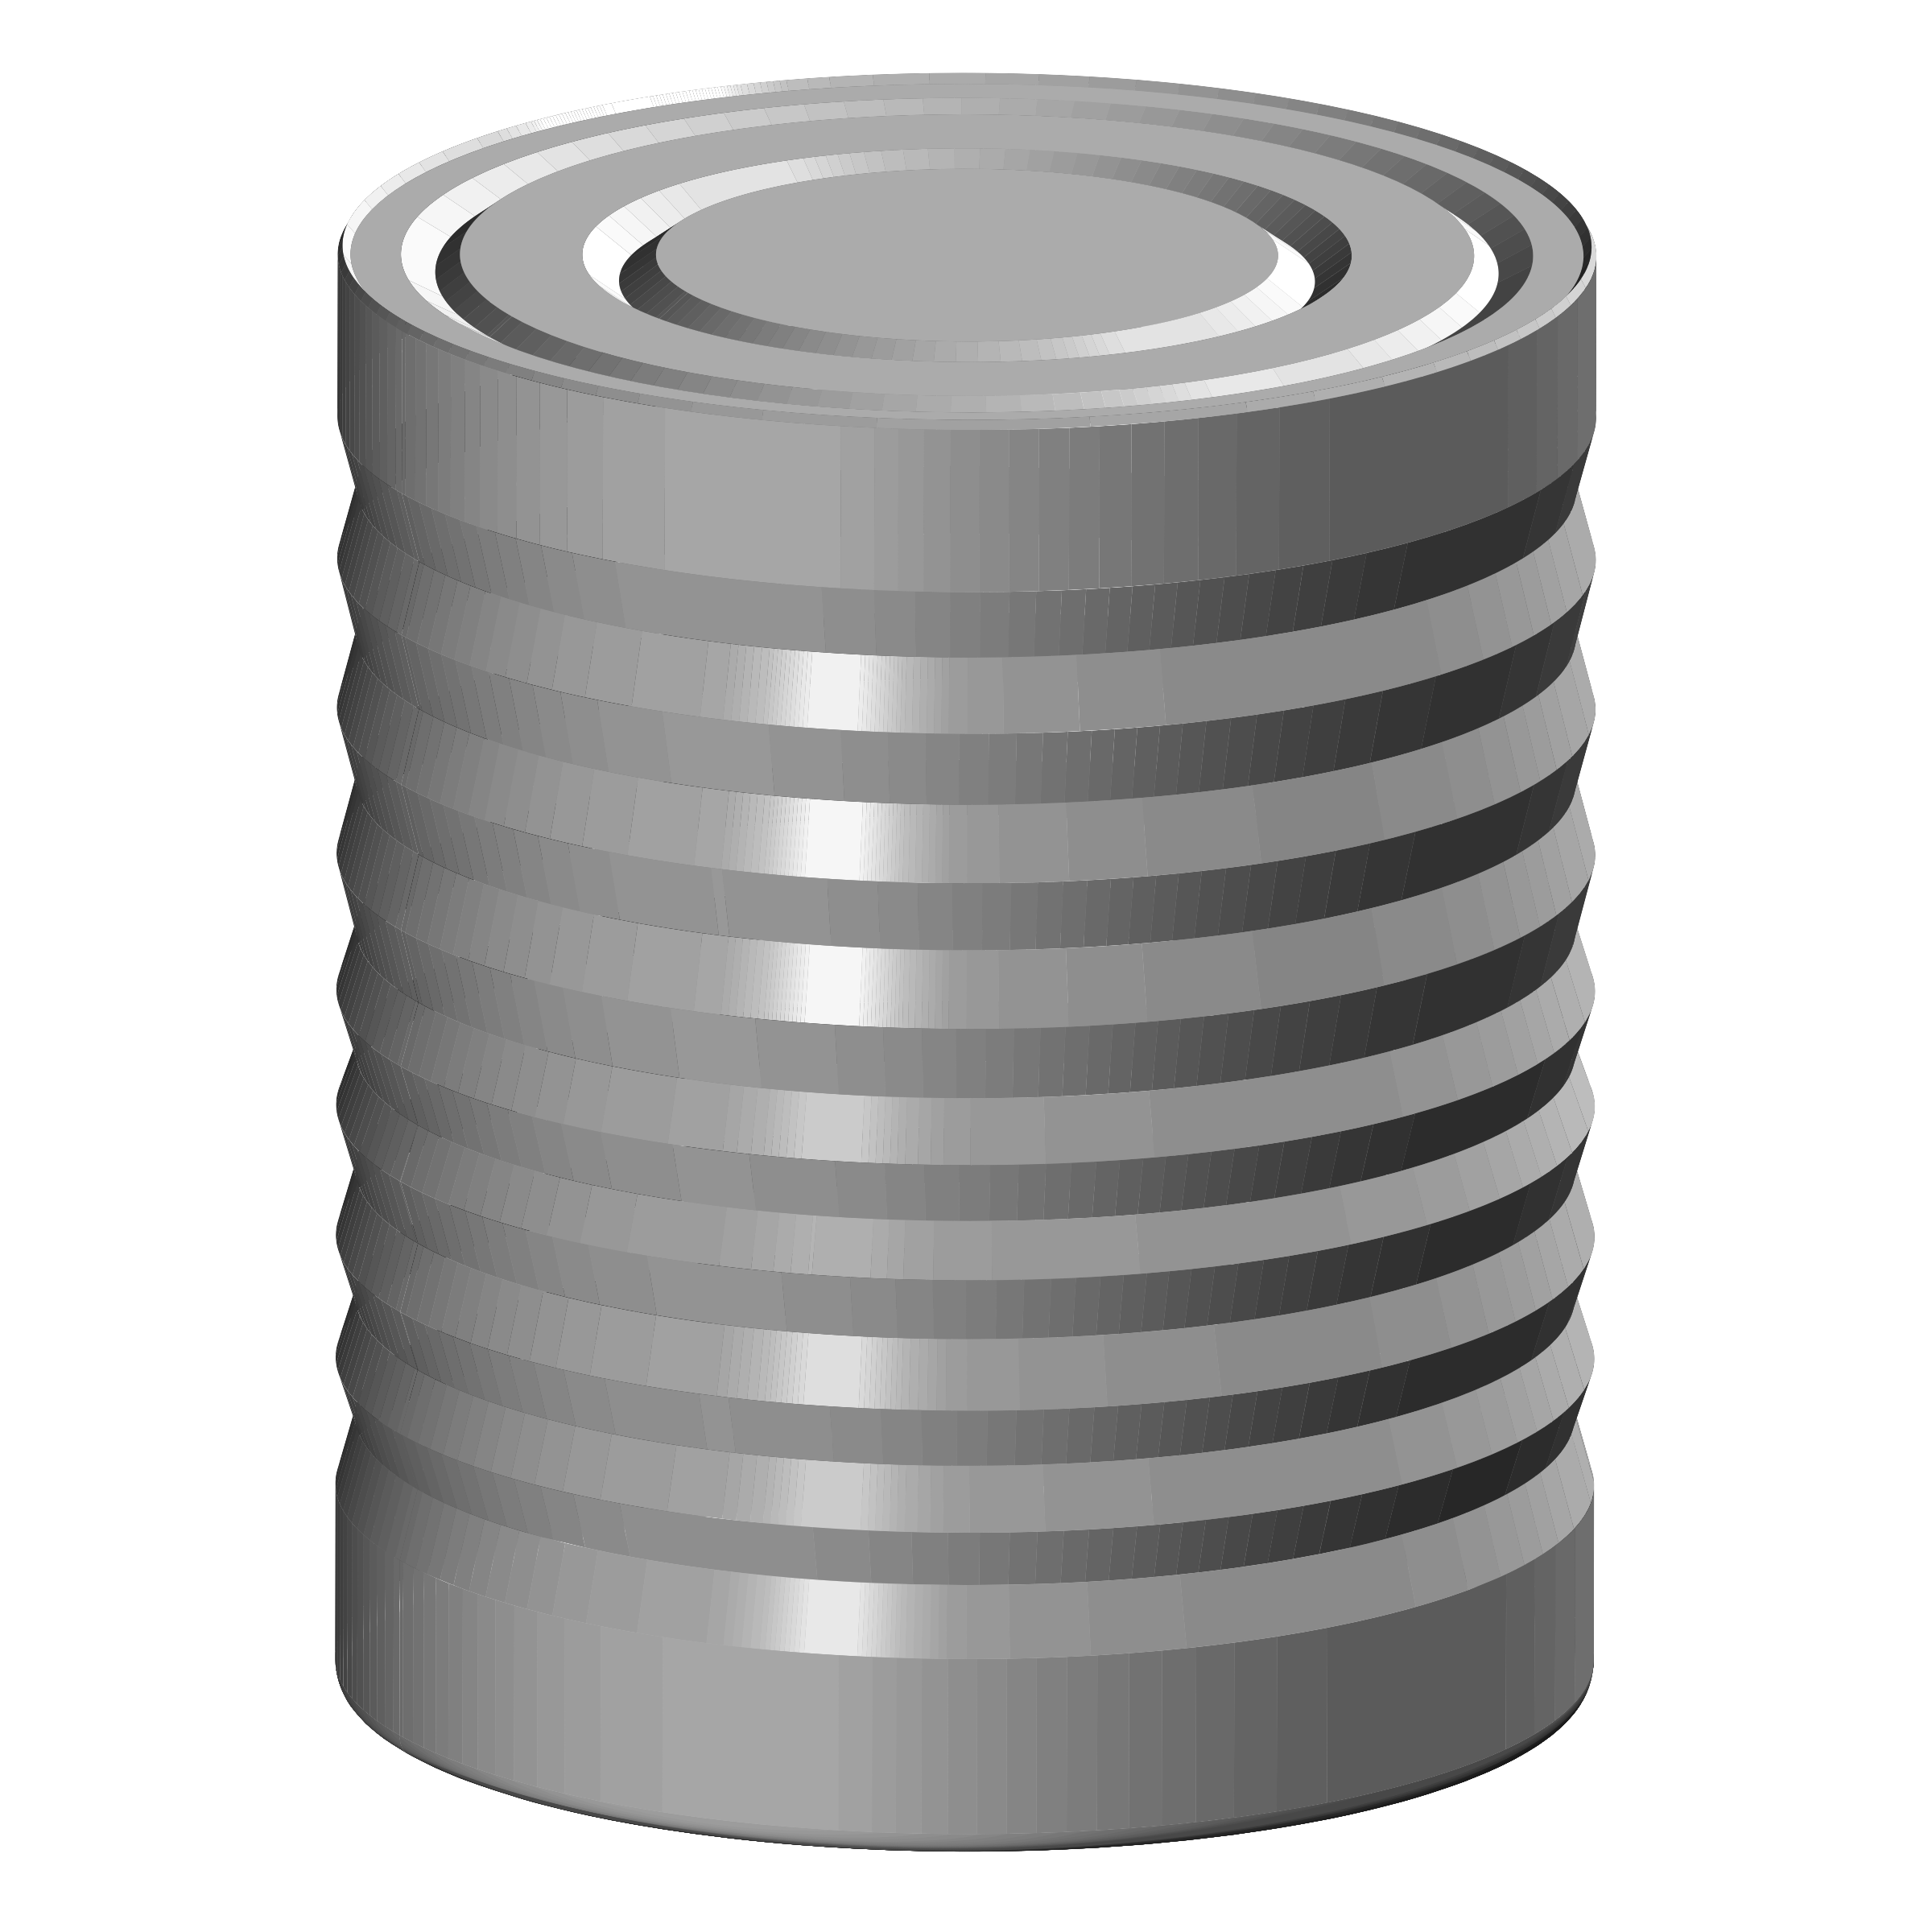 Tin Can Clipart Clipground